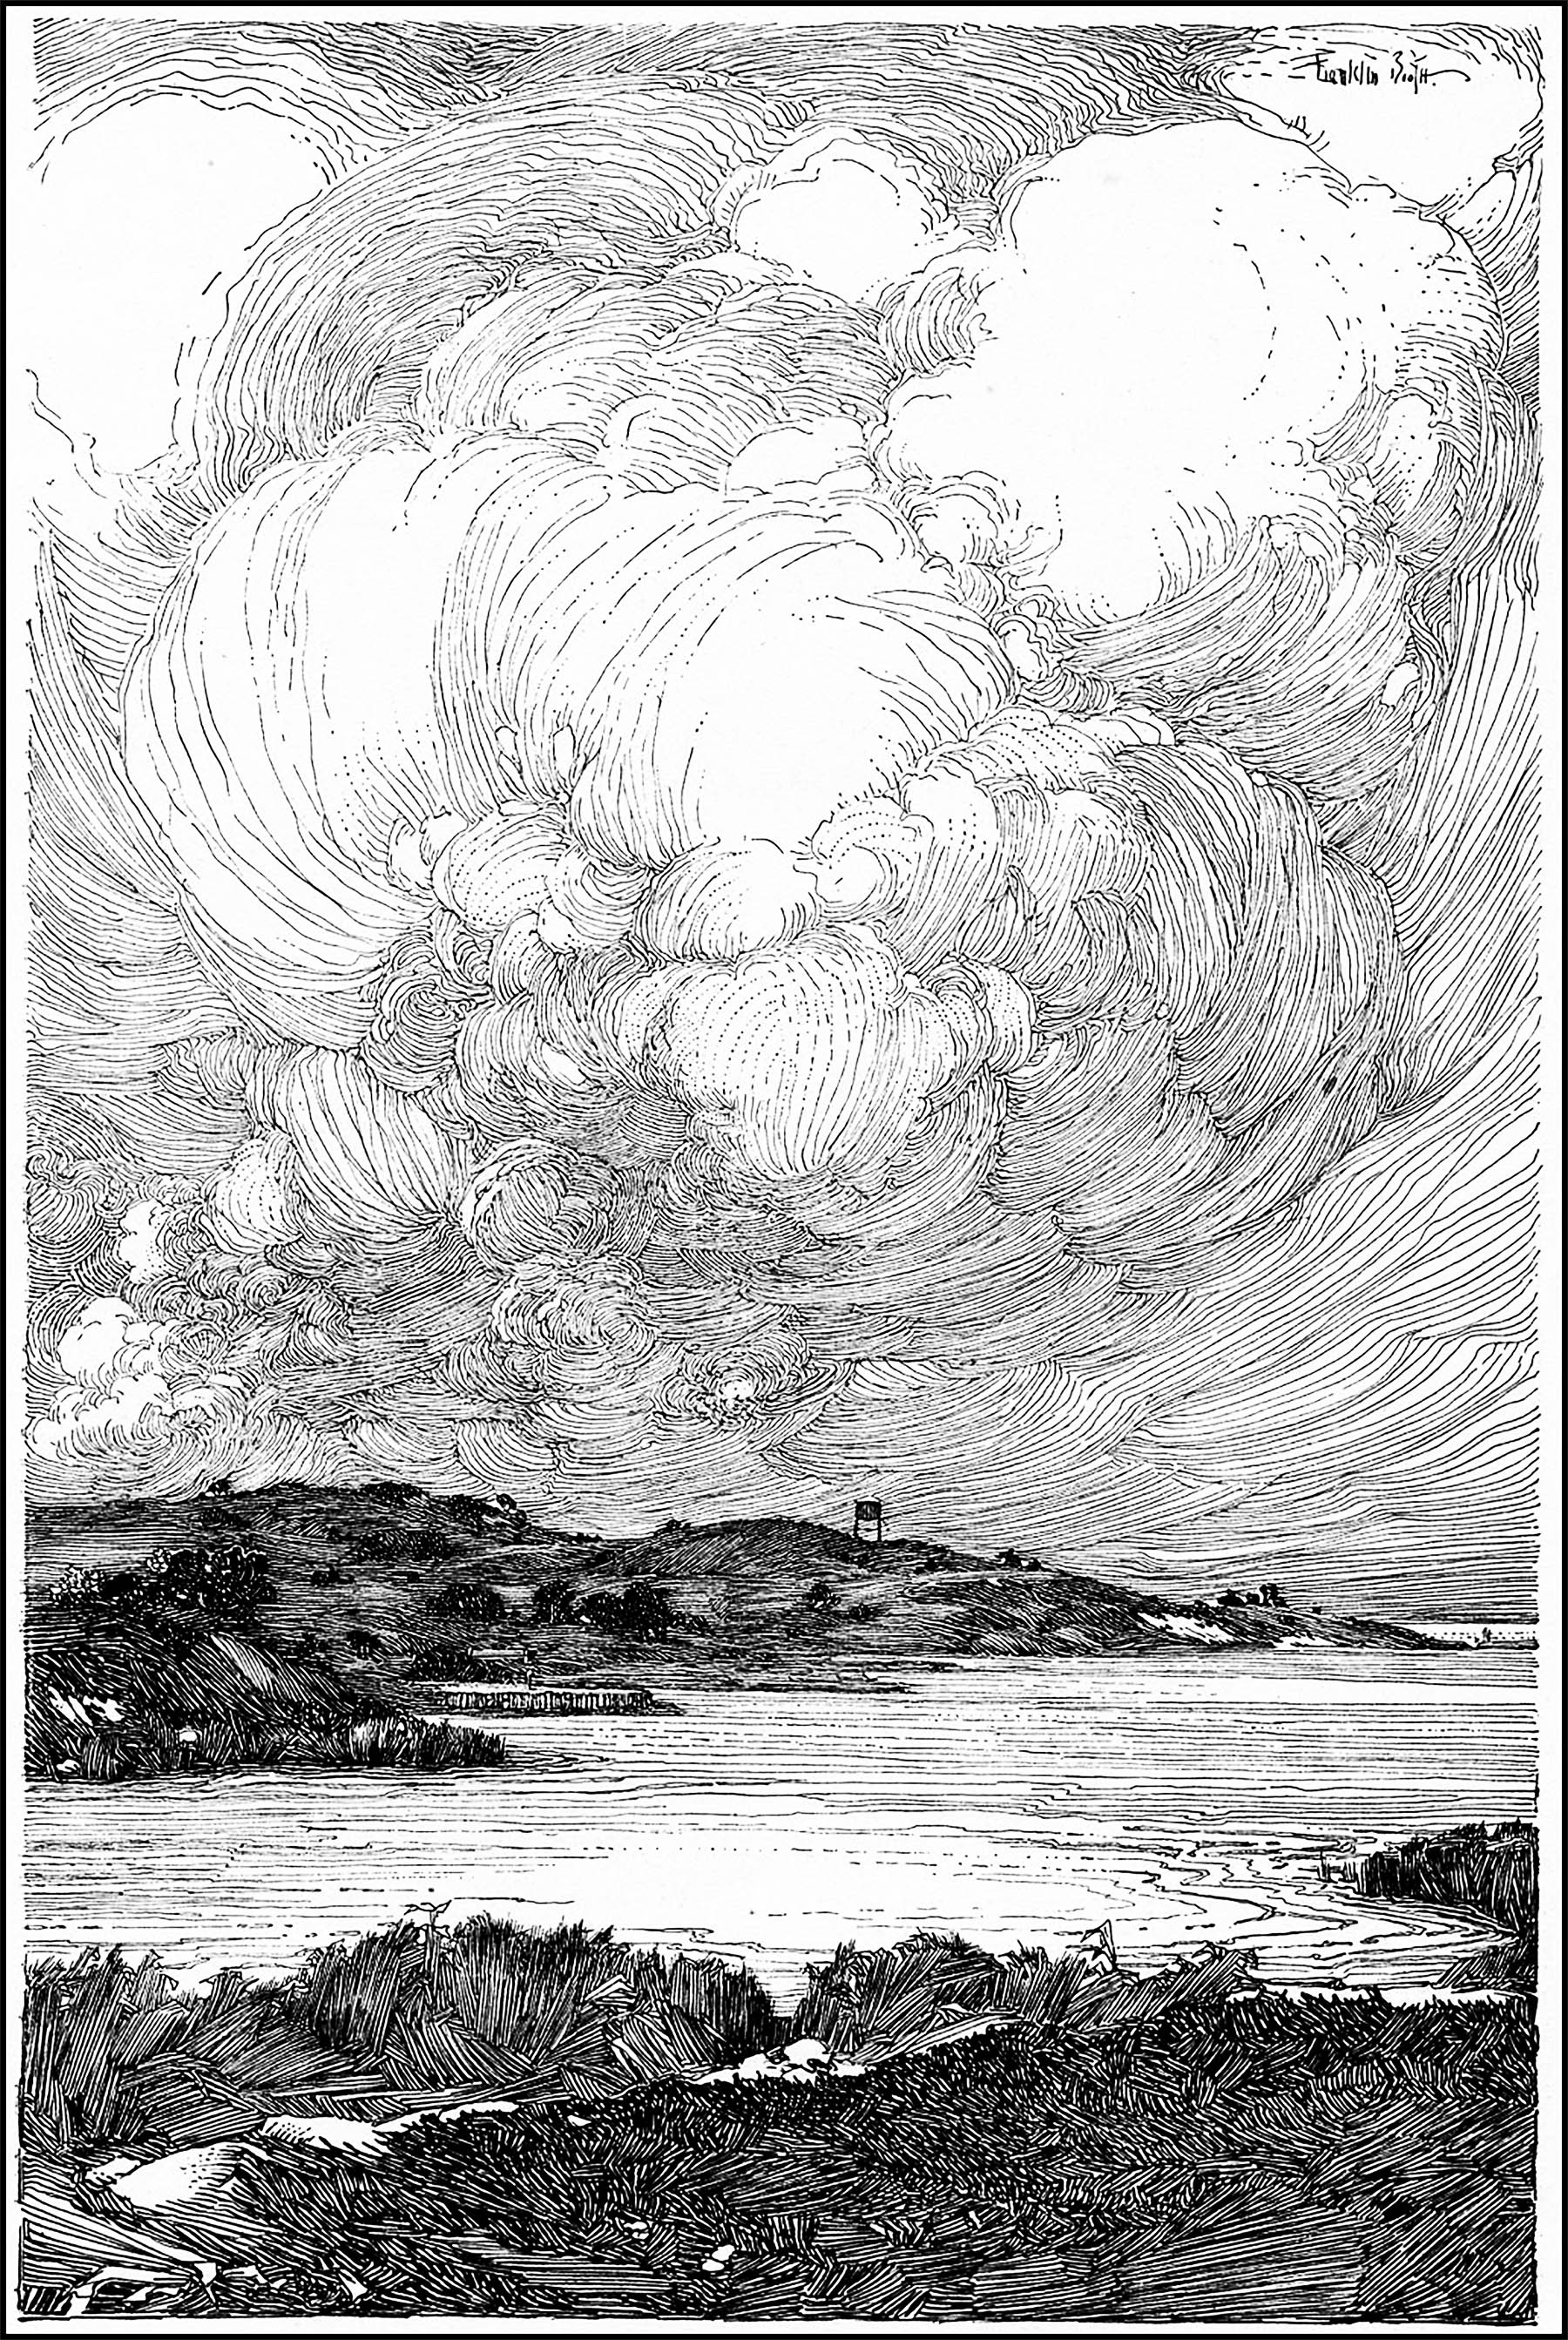 Detailed pen-and-ink illustration of an incredible seascape, by Franklin Booth, (1874 - 1948)